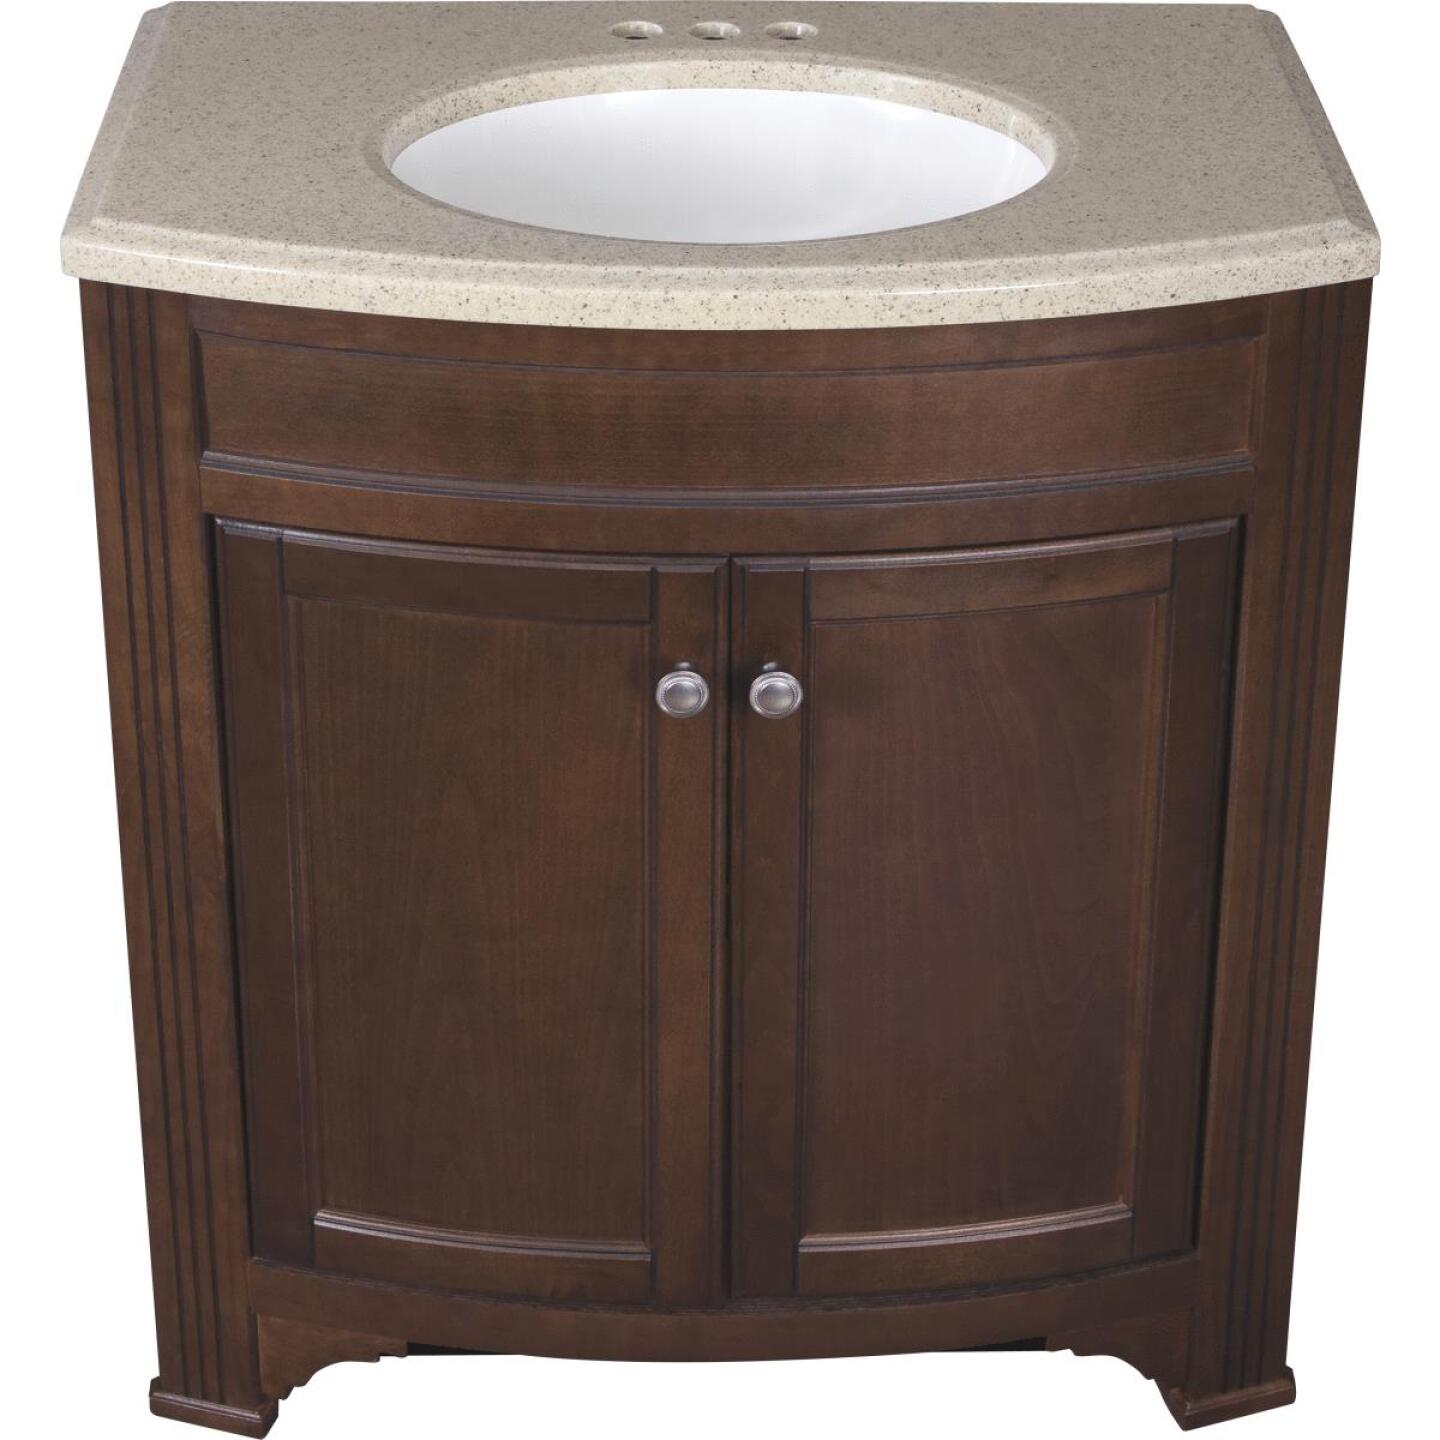 Continental Cabinets Duvall Cafe Black Glaze 30-3/4 In. W x 34-3/4 In. H x 18-1/2 In. D Vanity with Top Image 2